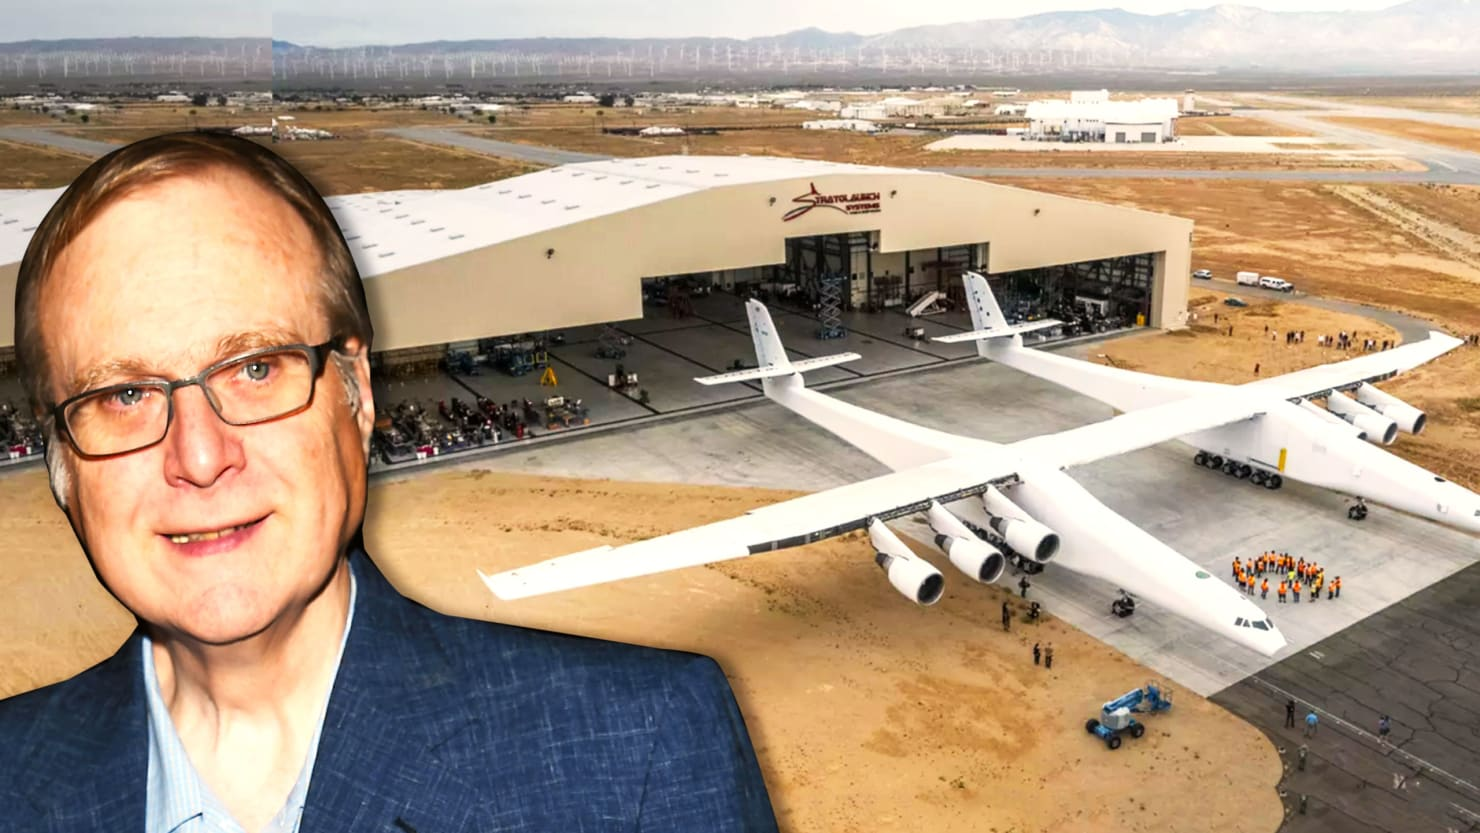 Paul Allen's Stratolauncher, the Biggest Airplane Ever, Gets Ready for Takeoff